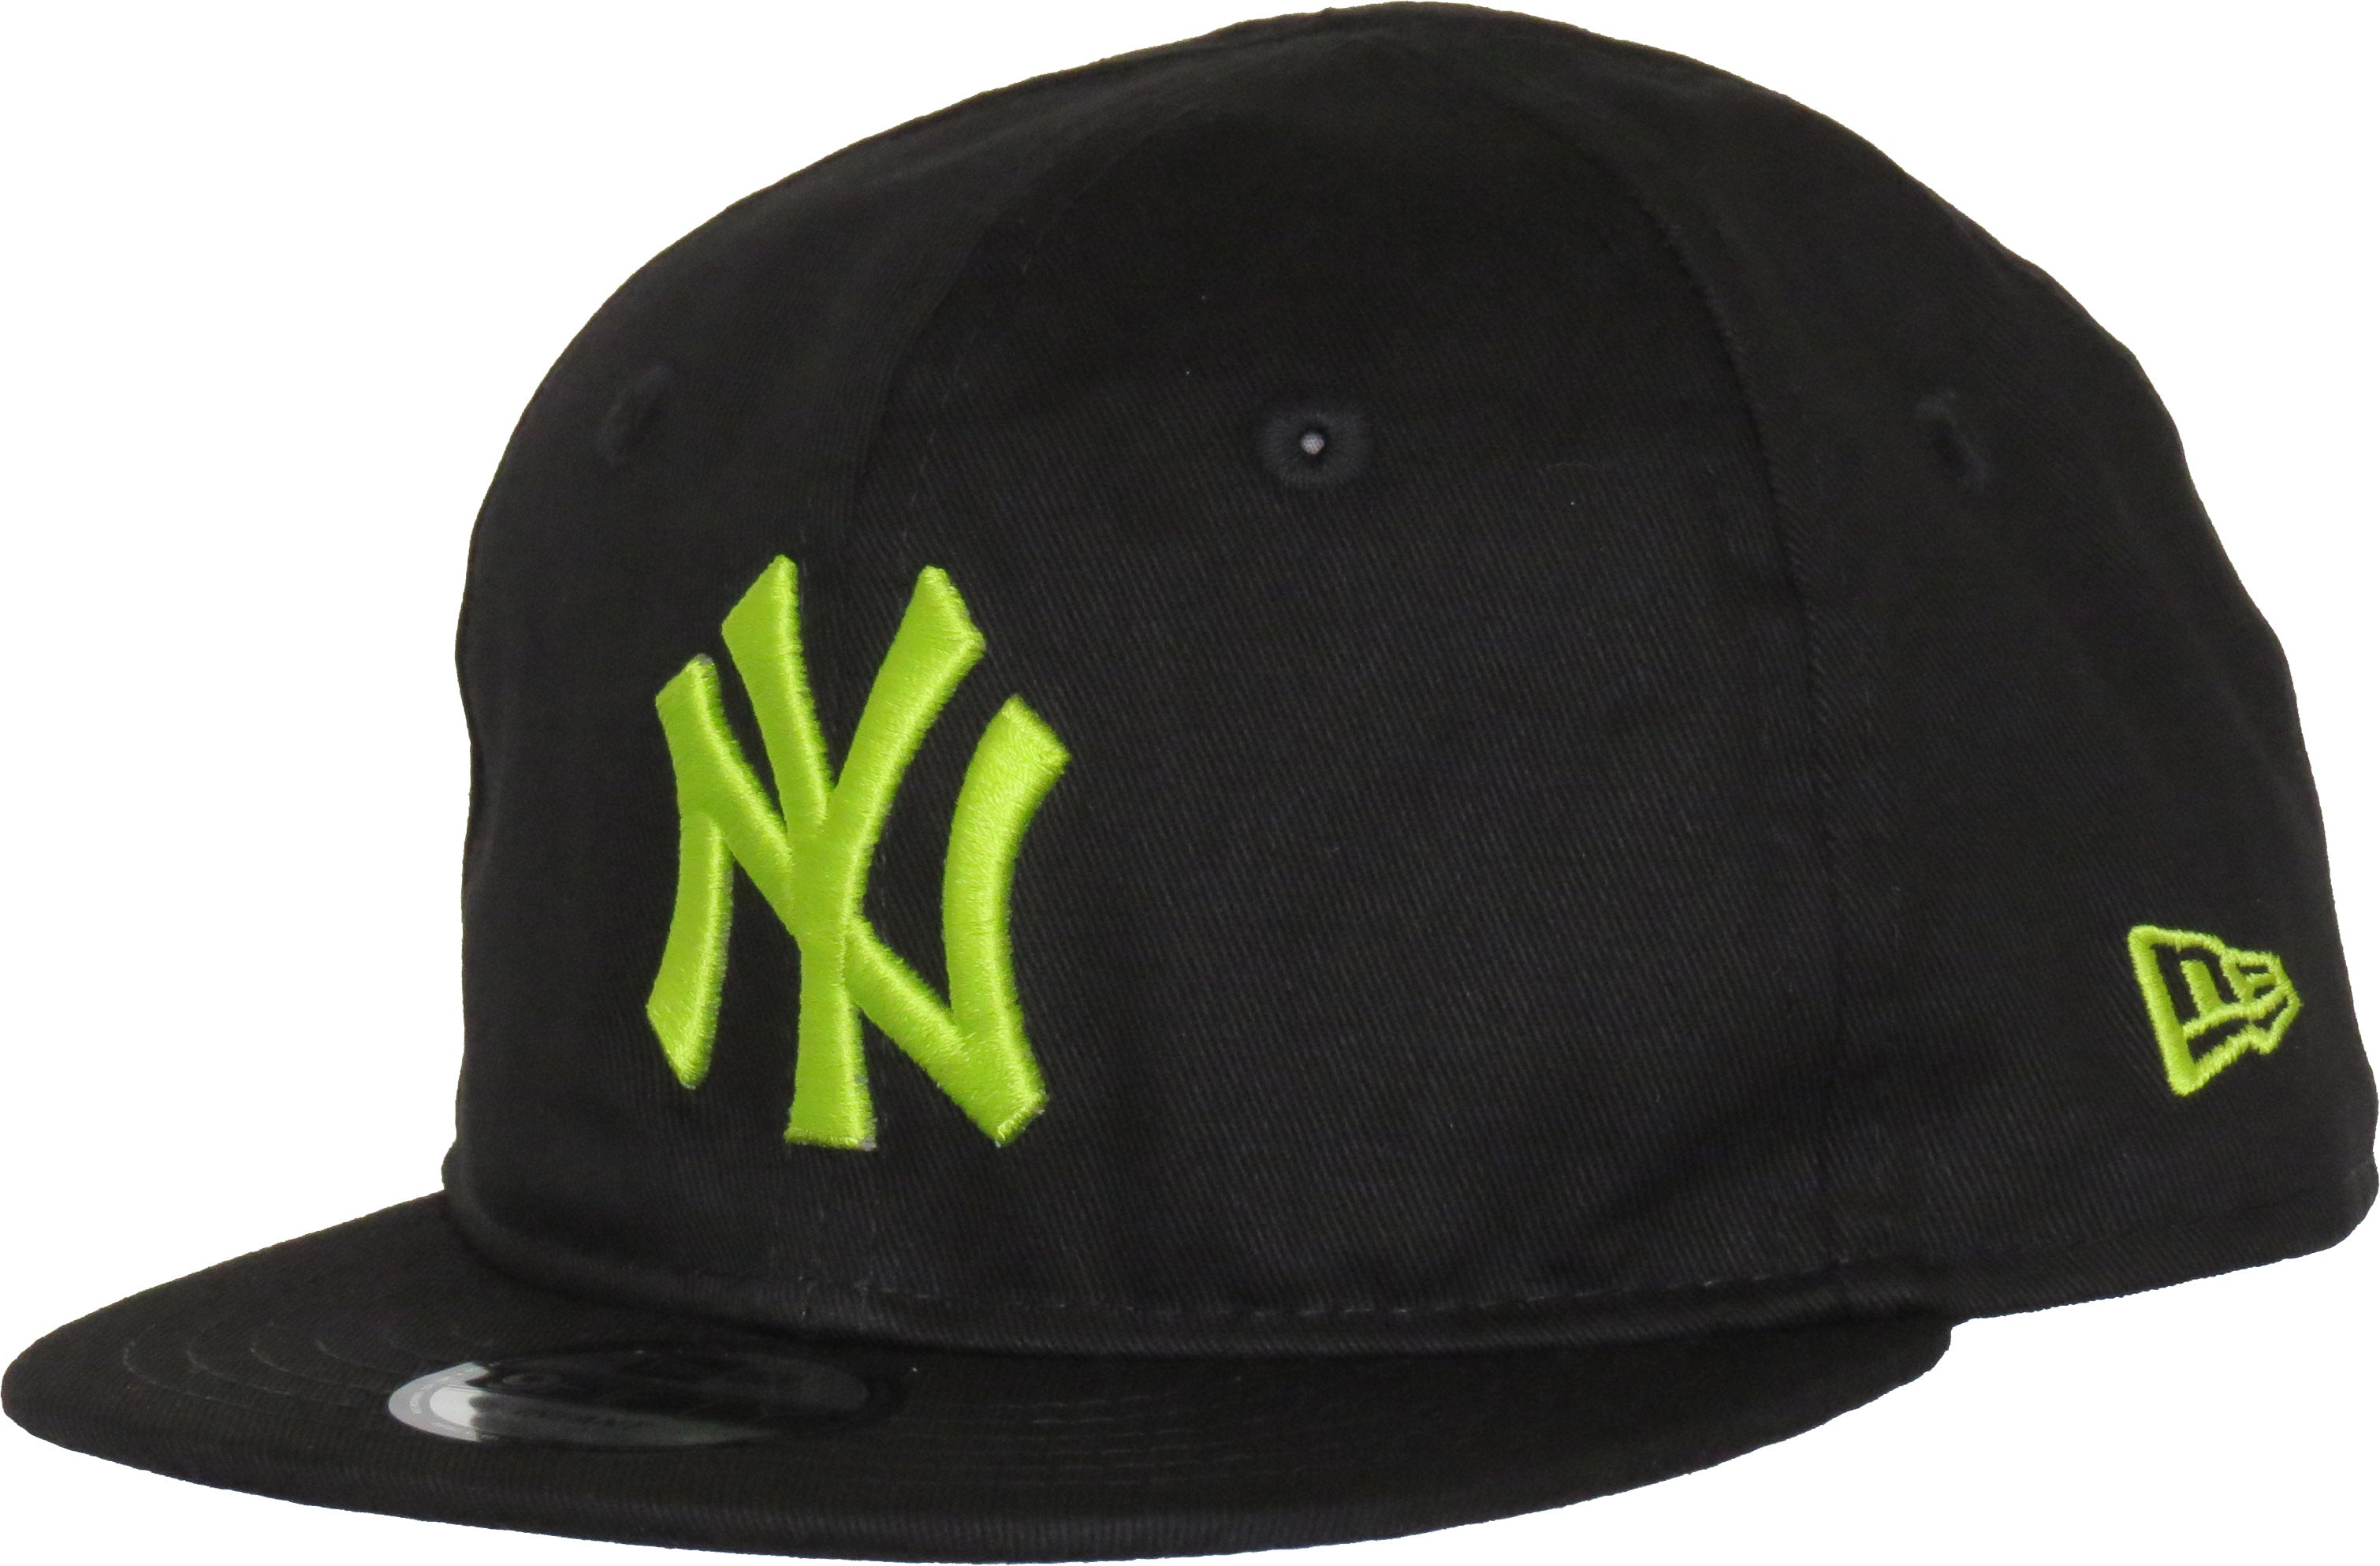 NY Yankees New Era 950 Infants Black Snapback Cap (0 - 2 years) – lovemycap cfe0a7ac4eca